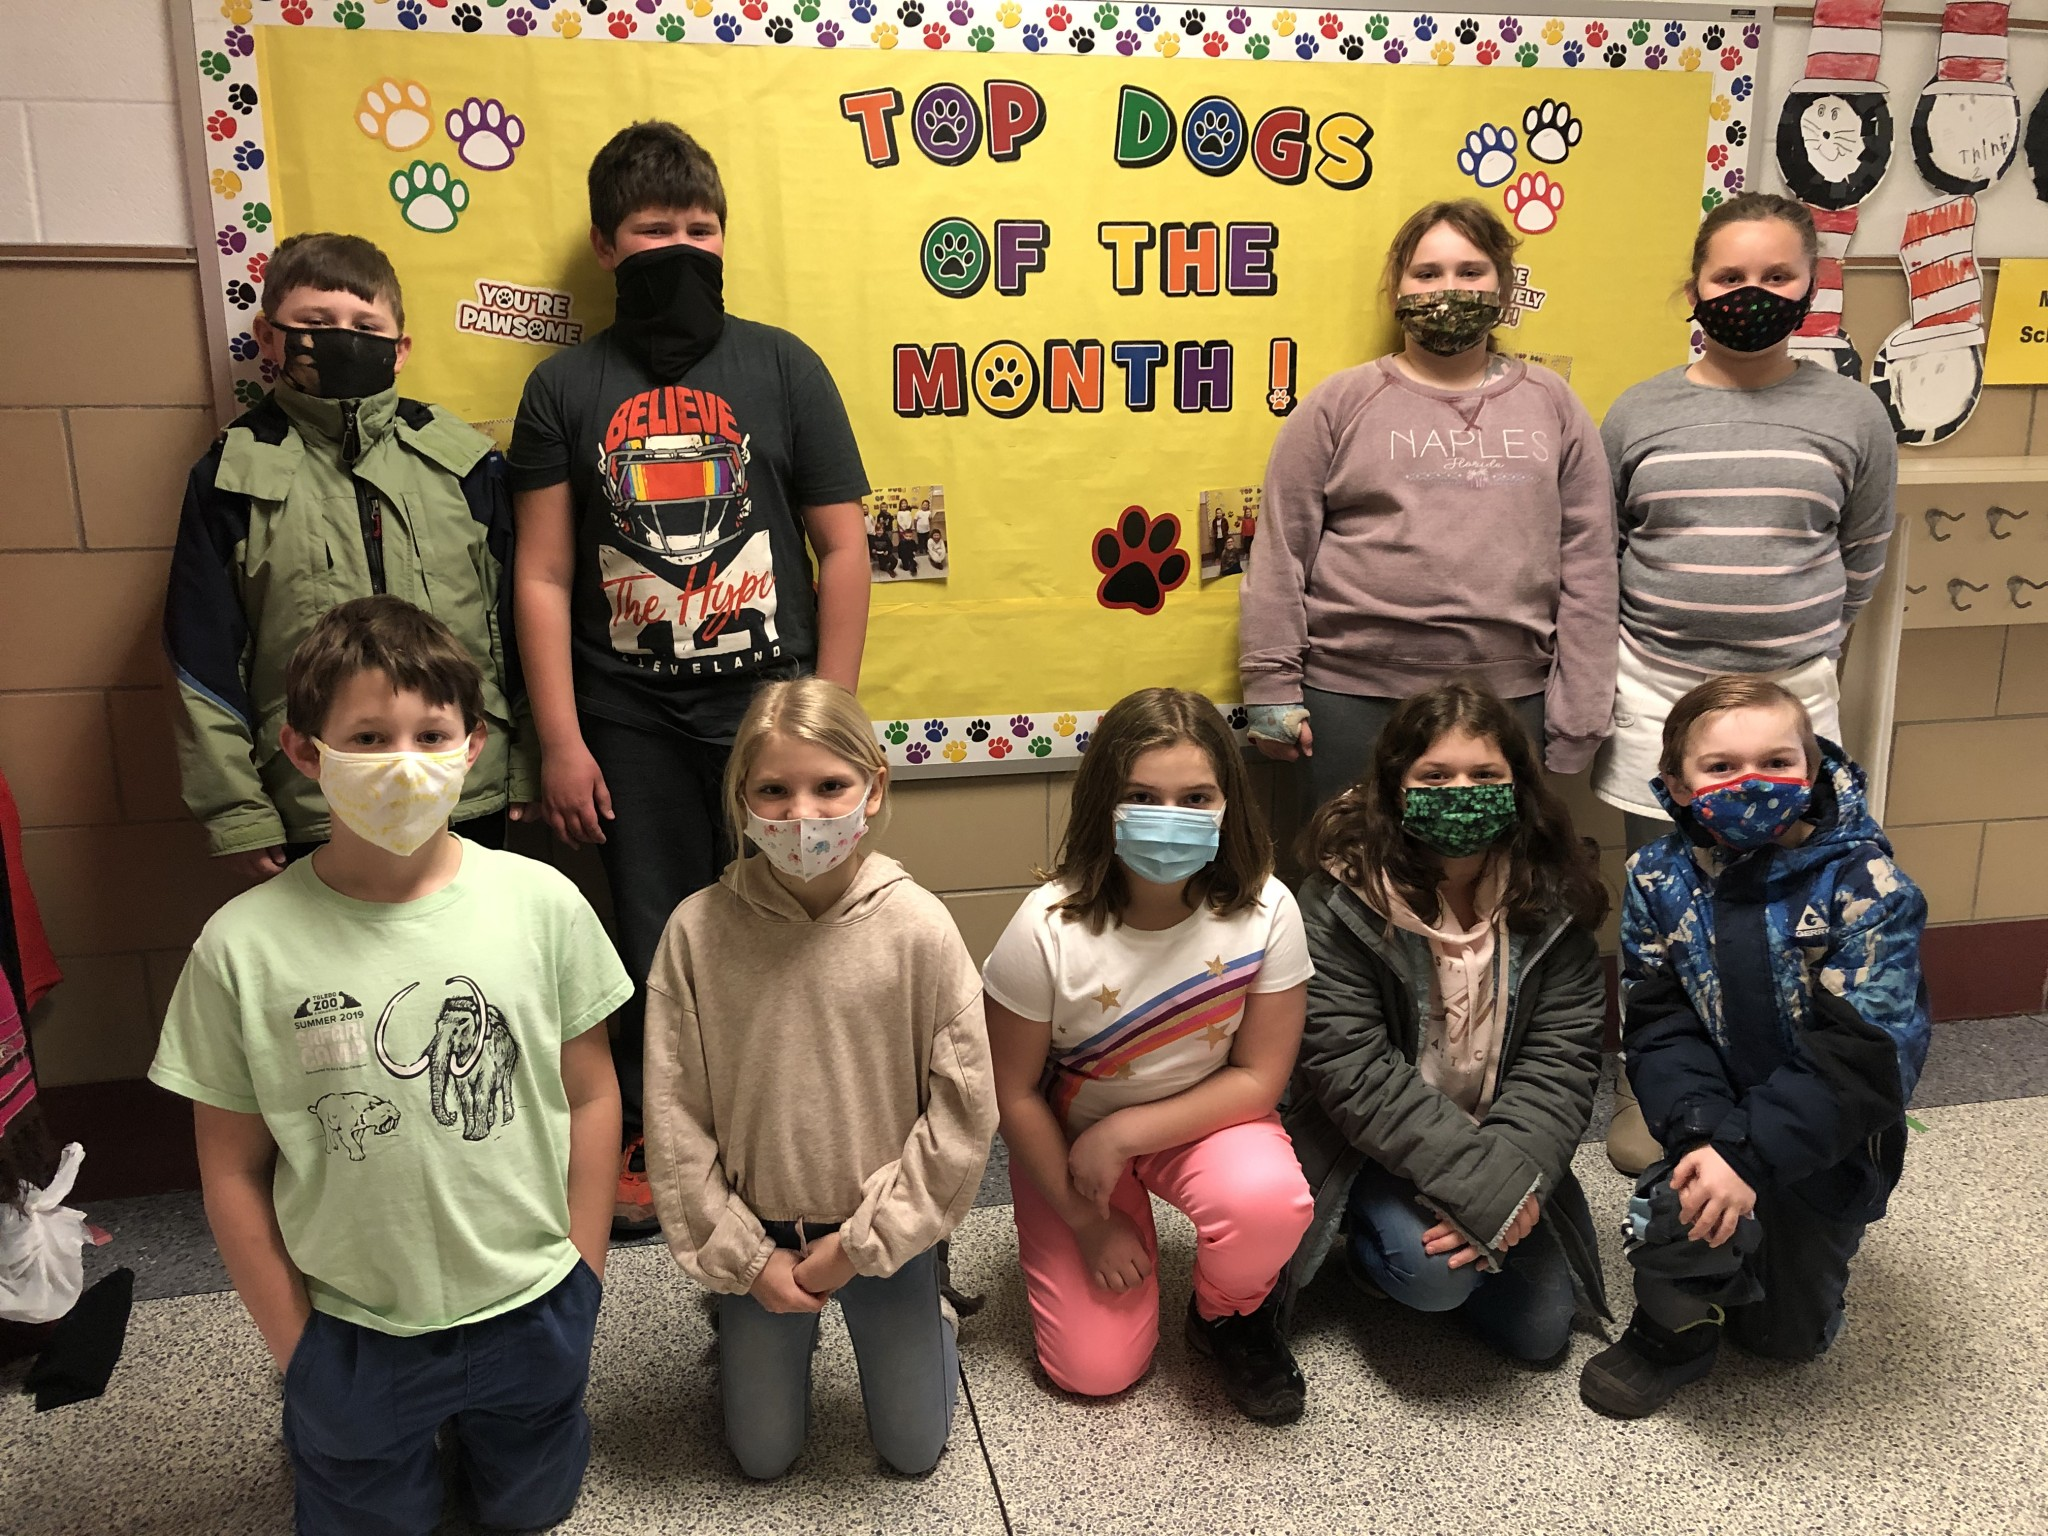 R.C. Waters third-grade top Class Dojo winners for the month of February include (back left to right) Jack Crawford, Greyson Leist, Erica Biggert, and Stella Laughlin; (front left to right) Tommy Revenaugh, Harper Schultz, Hailey Stoops. Rhiley Cover, and Jethro Duez. (Not pictured: Kasen Heminger.) (Submitted photo)